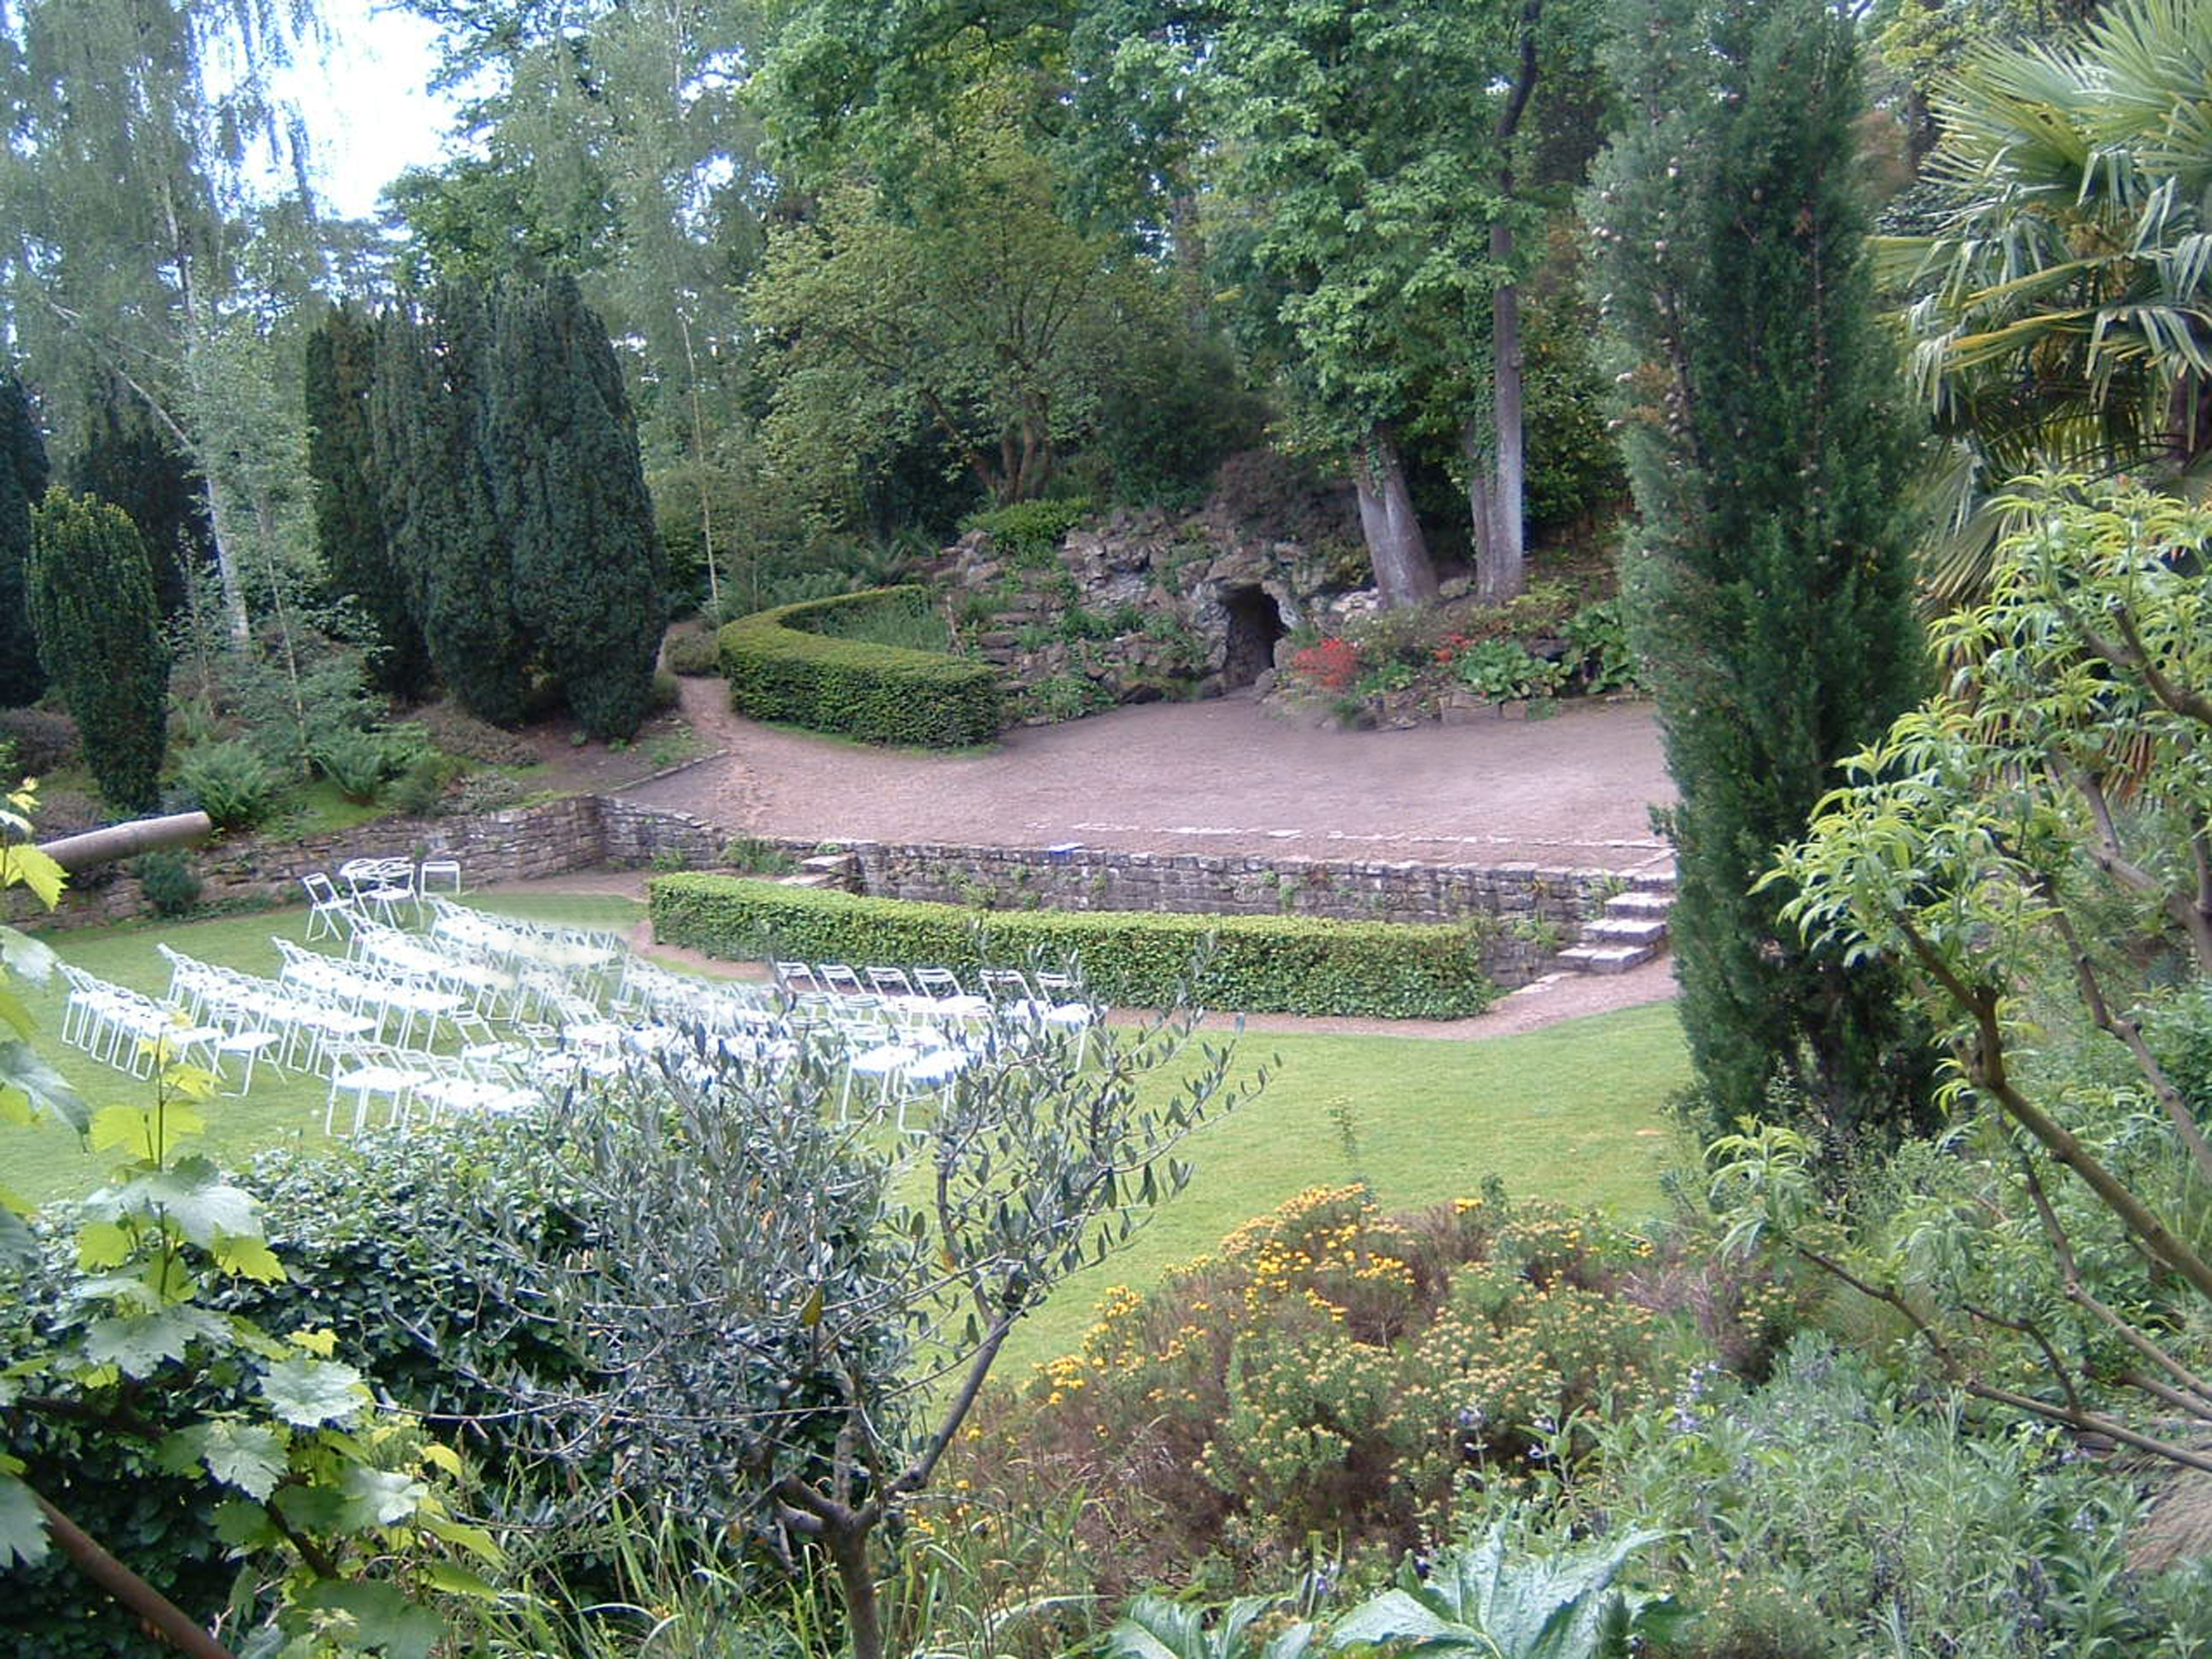 Spectacles en plein air direction le jardin du pr - Theatre de verdure du jardin shakespeare pre catelan ...